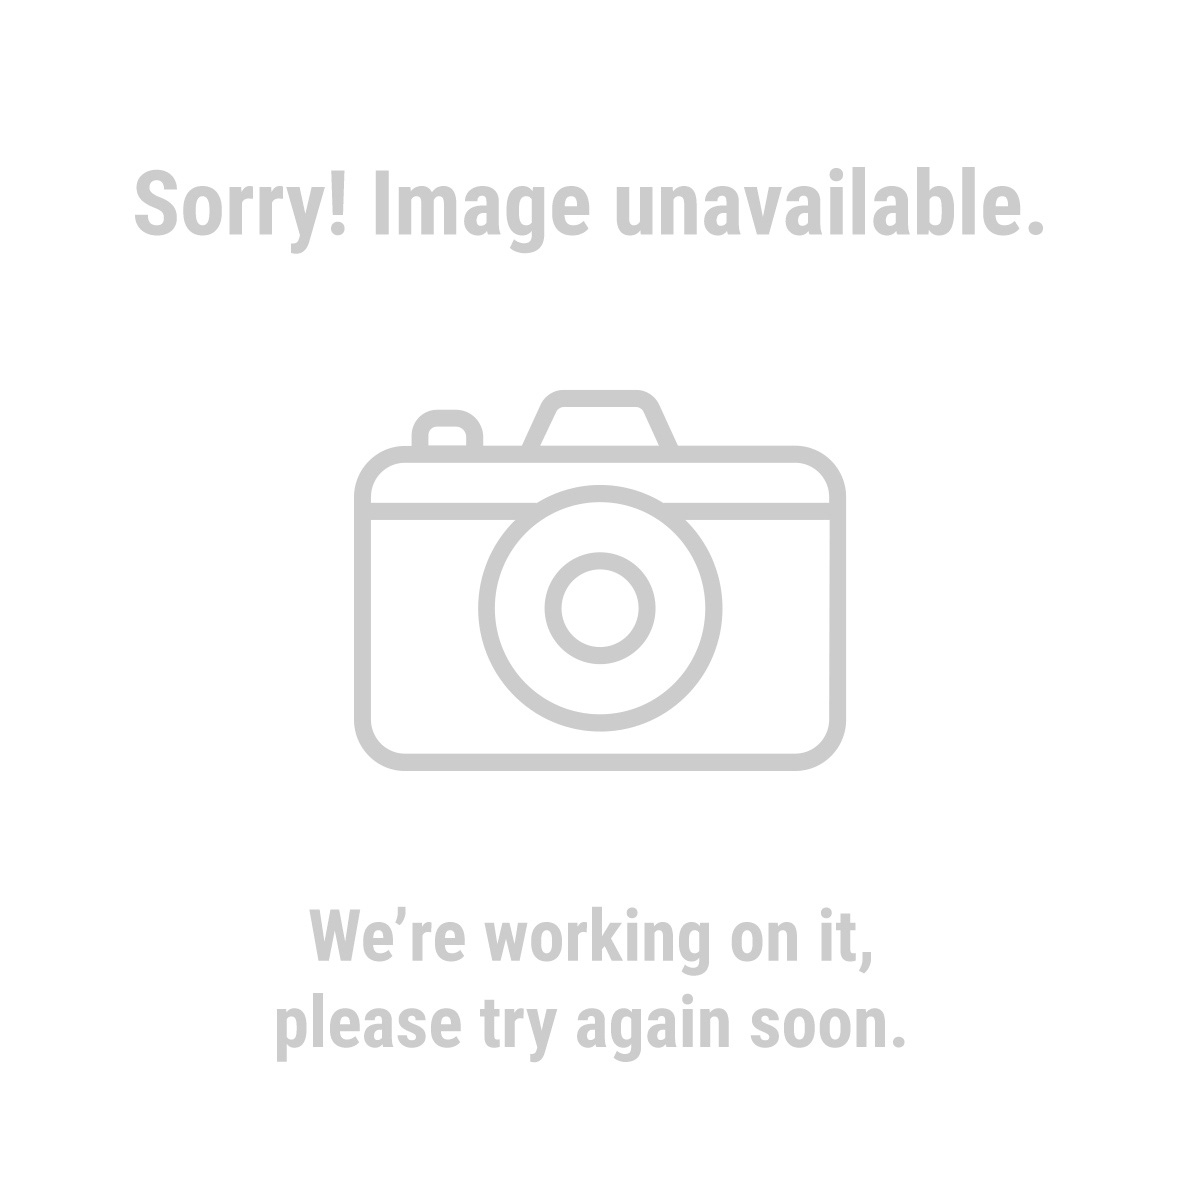 Central Pneumatic 69667 8 gal. 2 HP 125 PSI Oil Lube Air Compressor